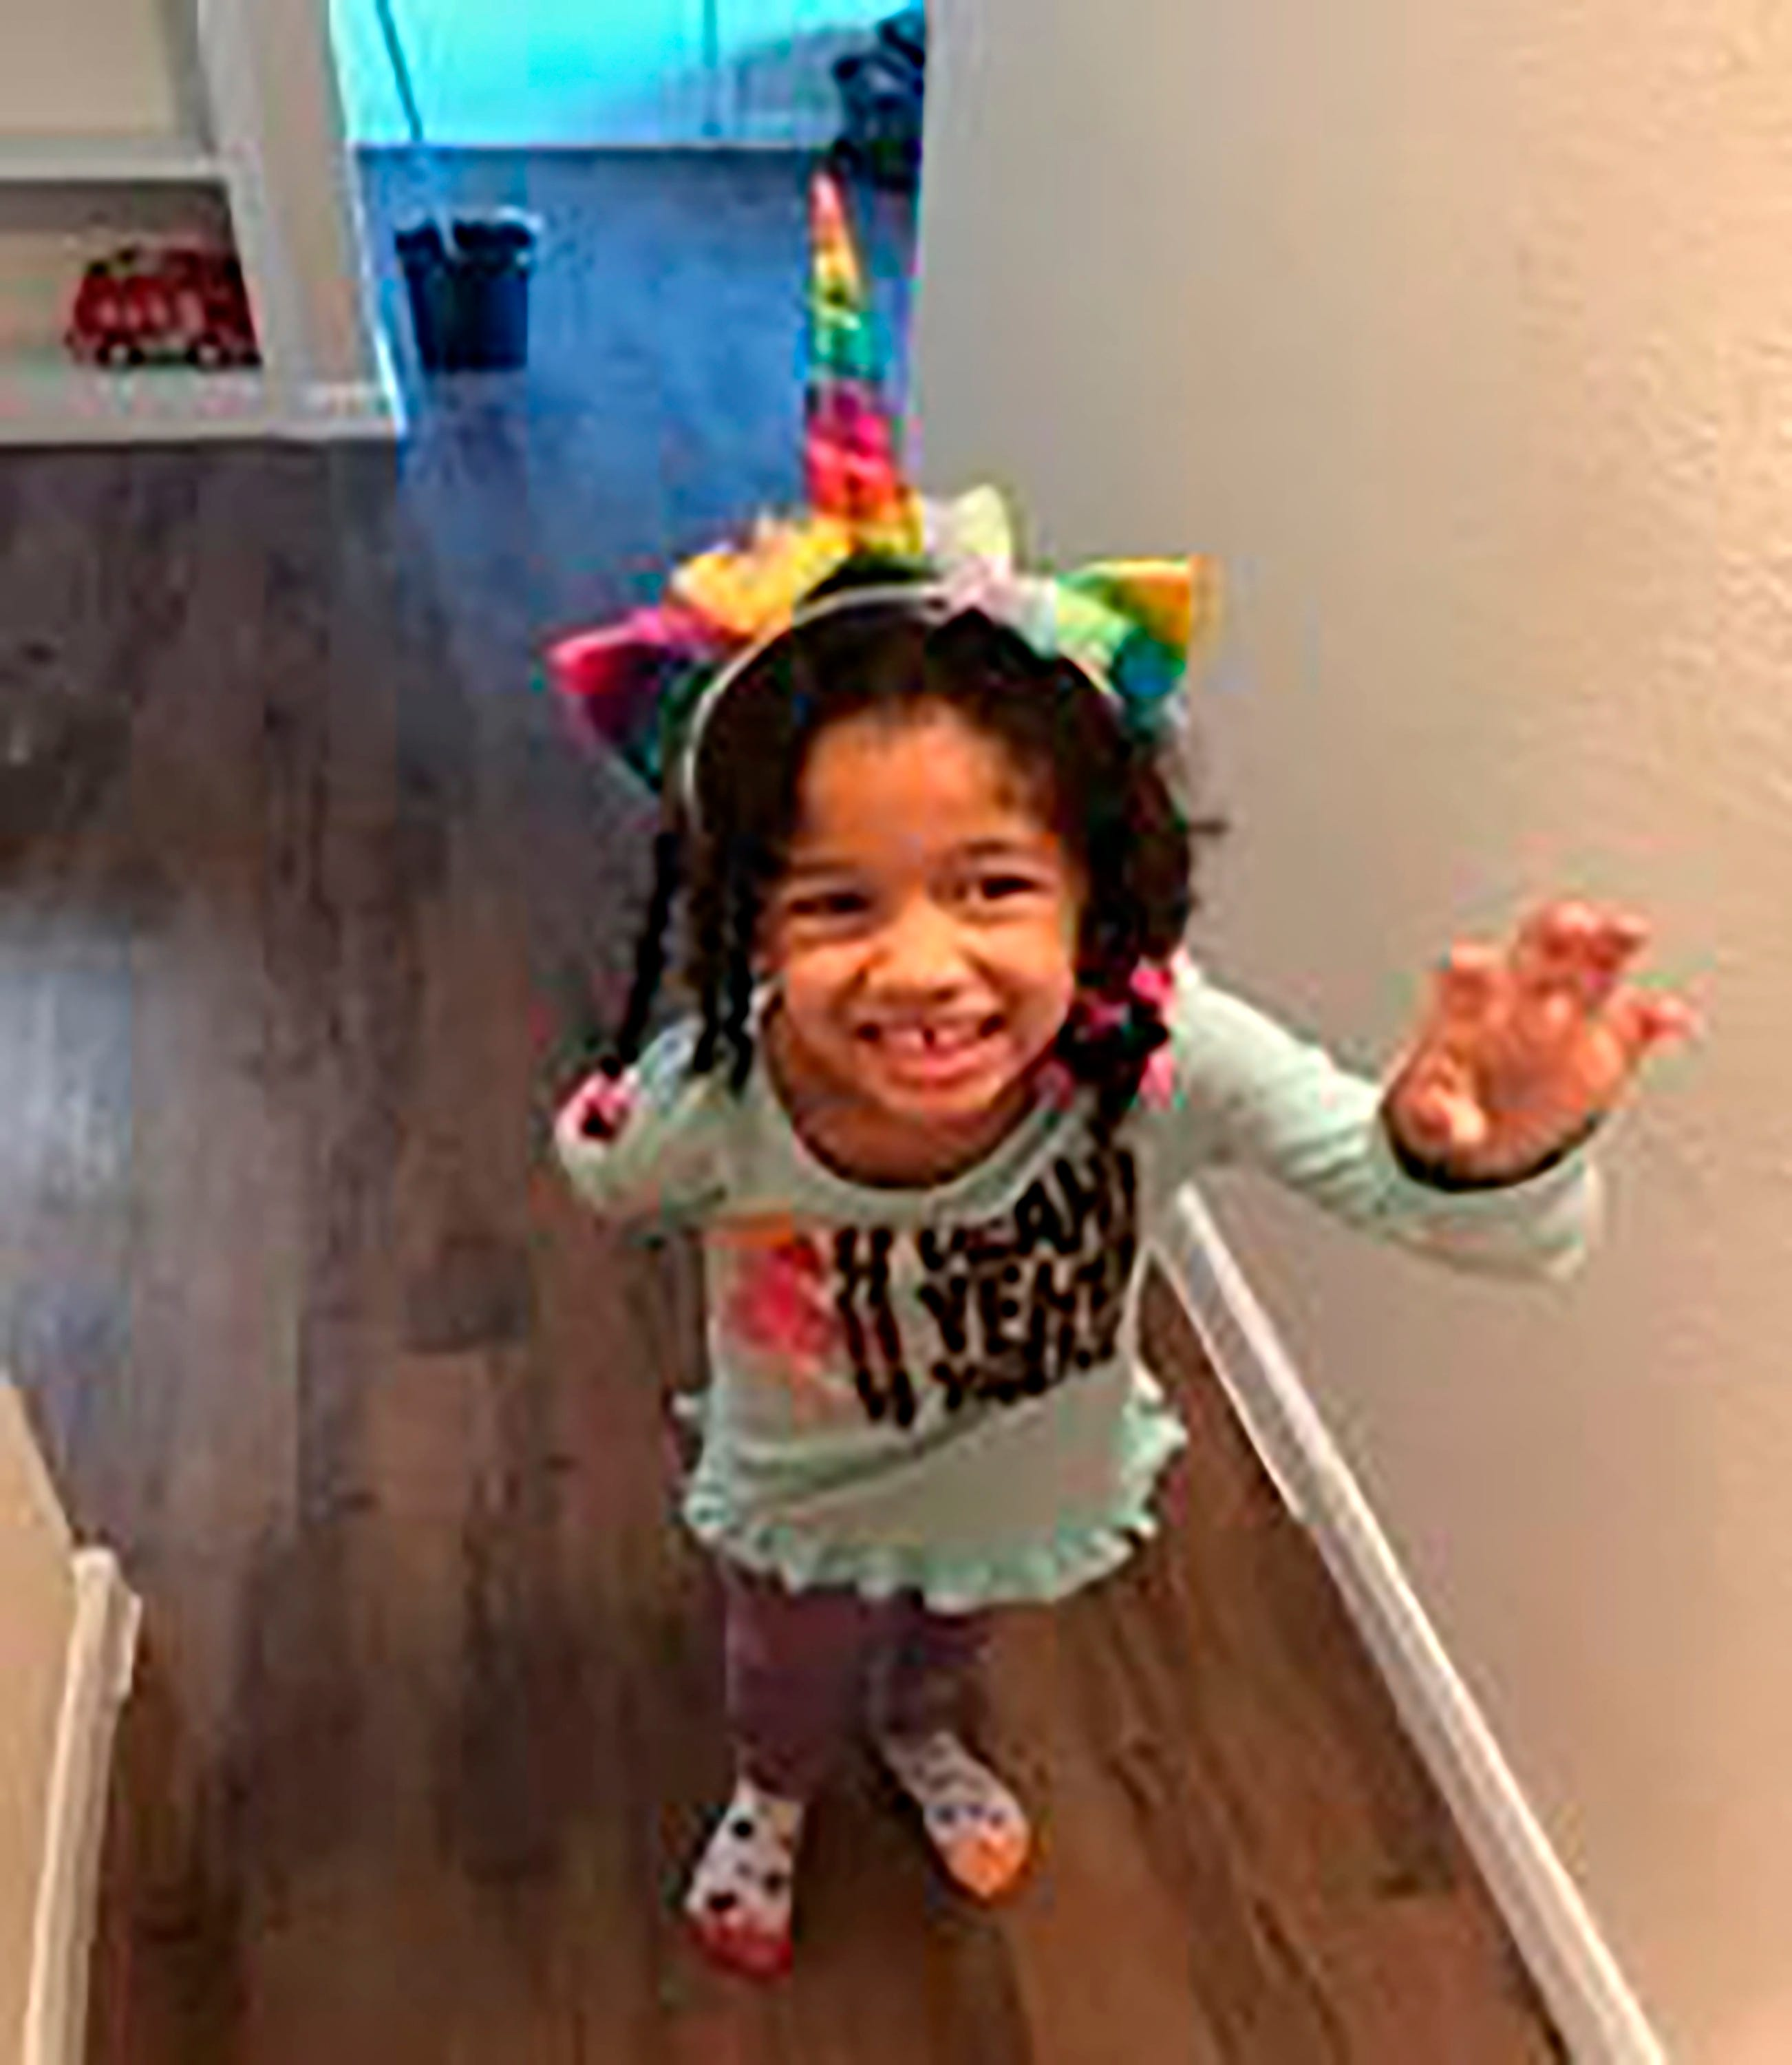 Dogs detect human decomposition in car of man arrested in case of missing girl Maleah Davis, 4